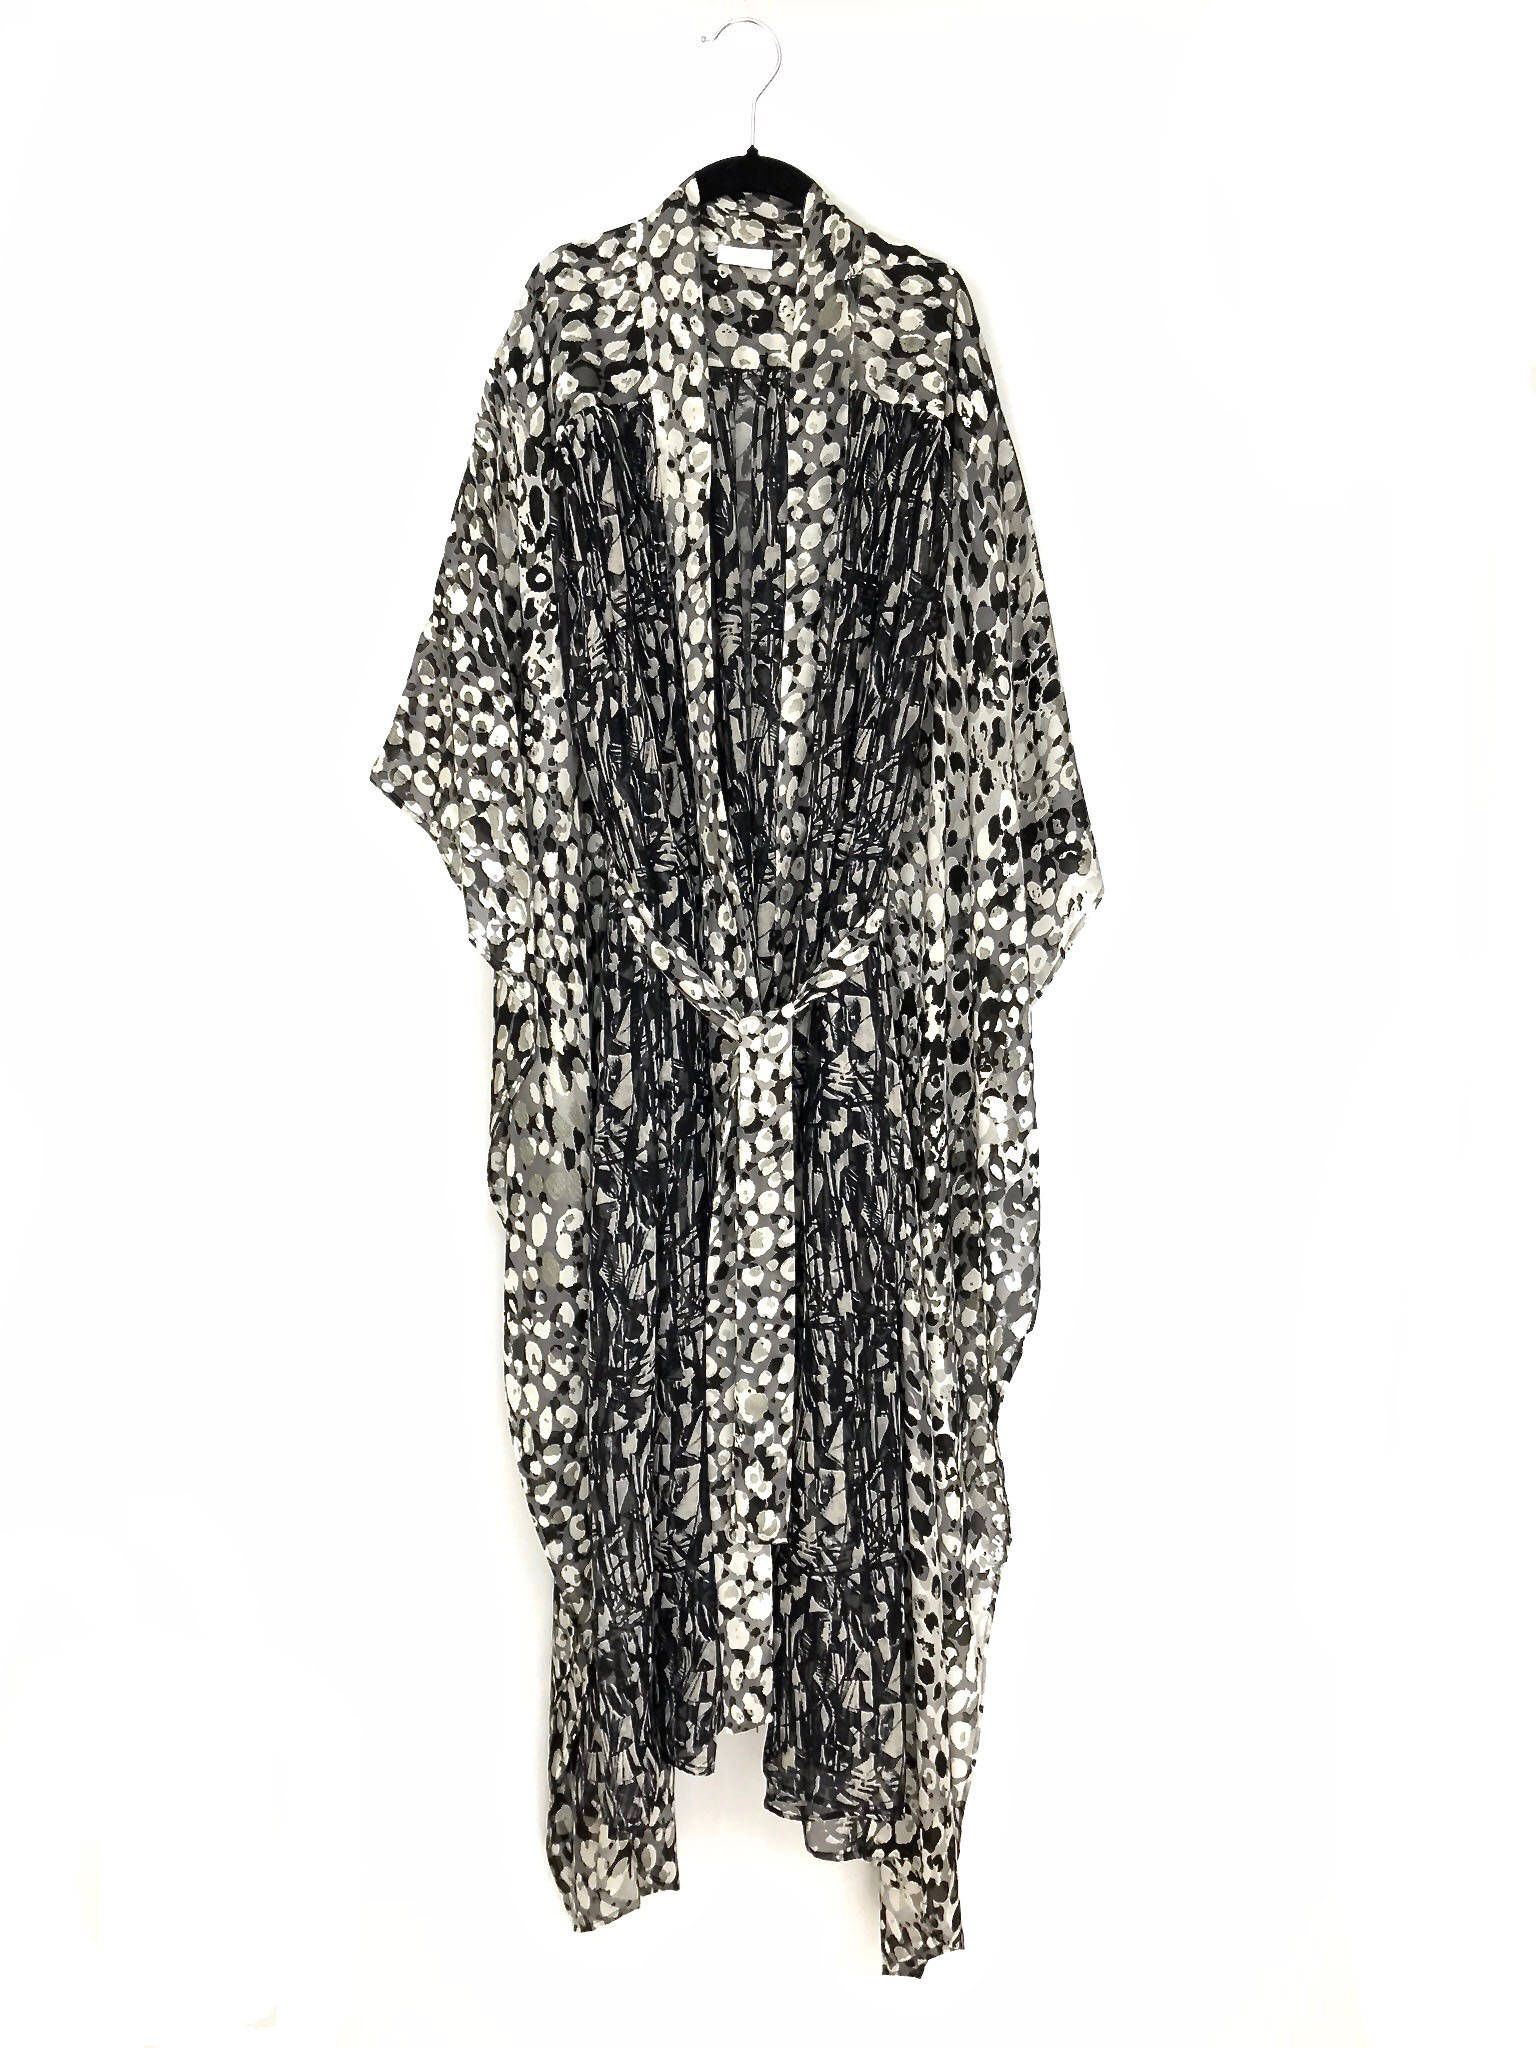 Silk kimono robe, silk beach cover up, full length robe